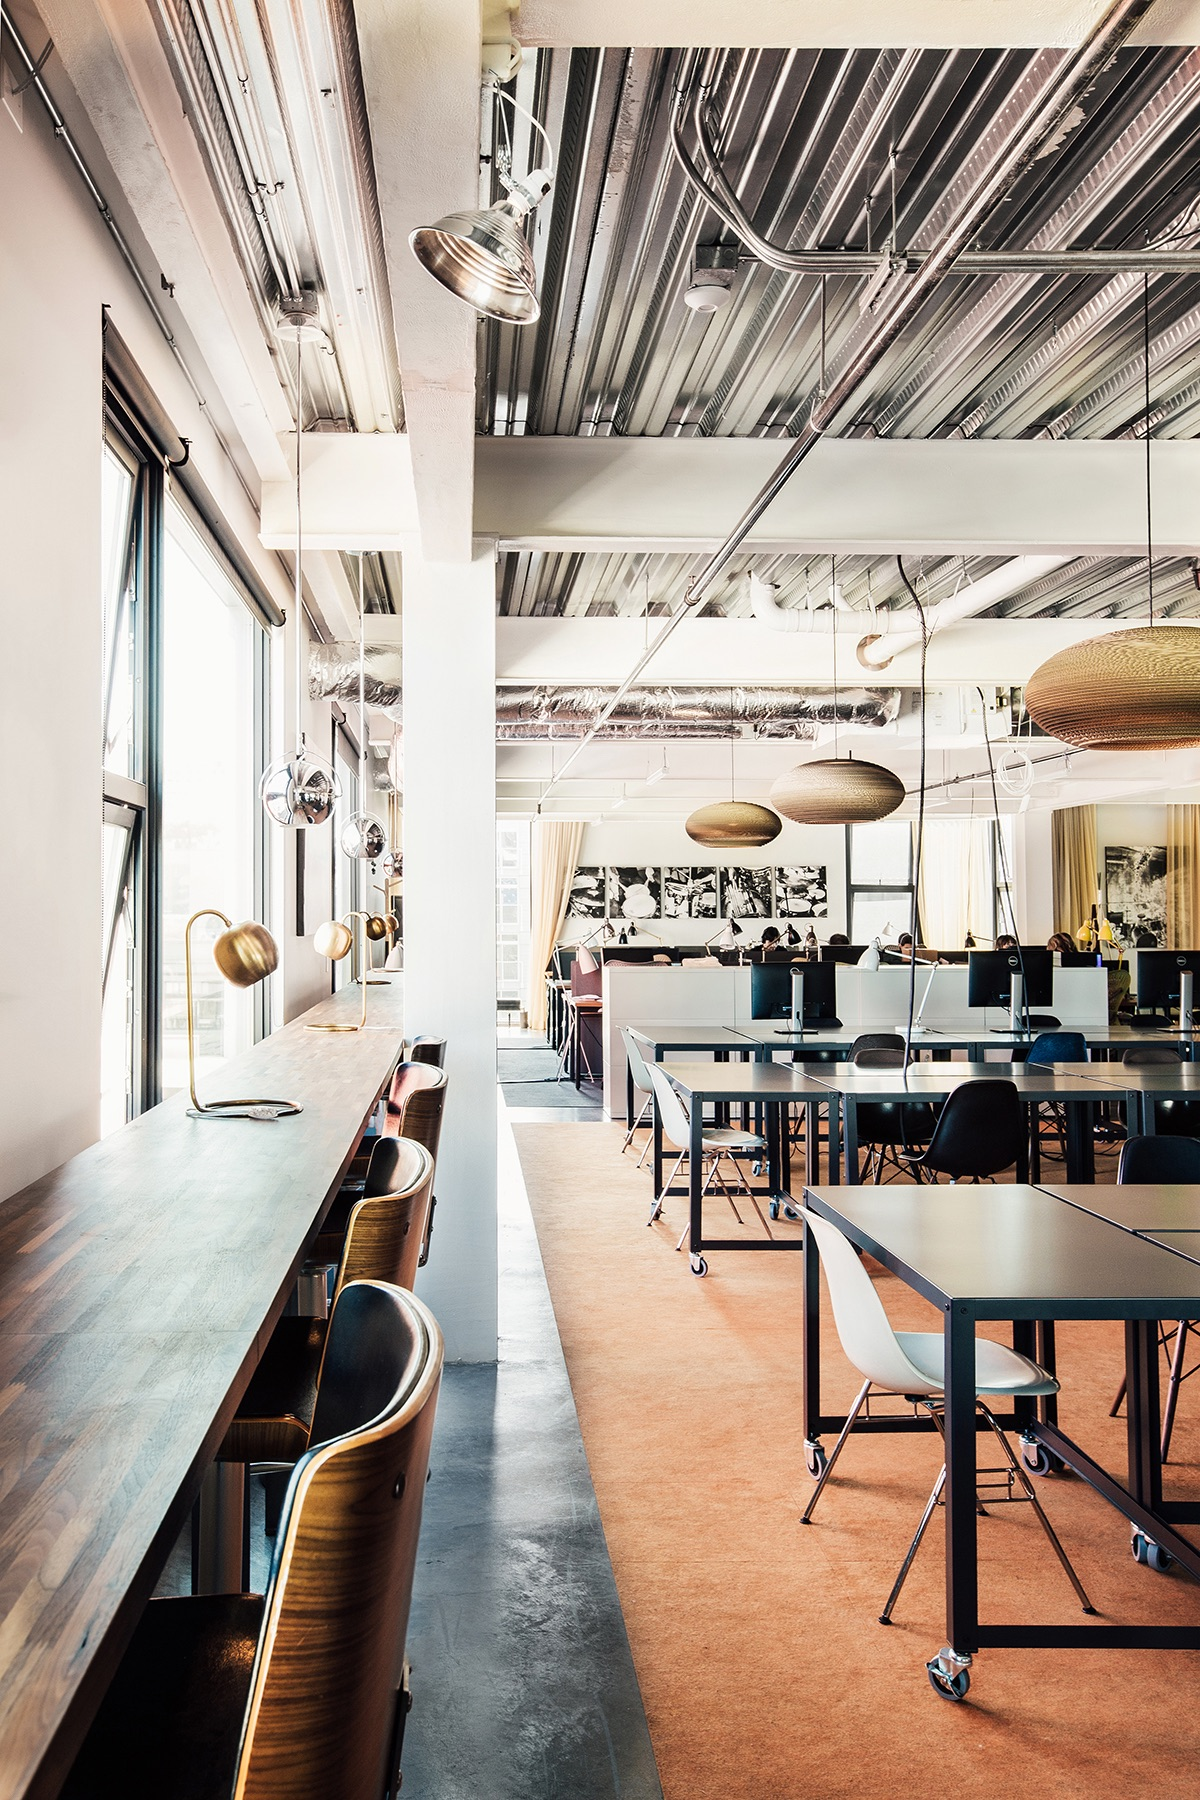 cloudroom-seattle-workspace-8